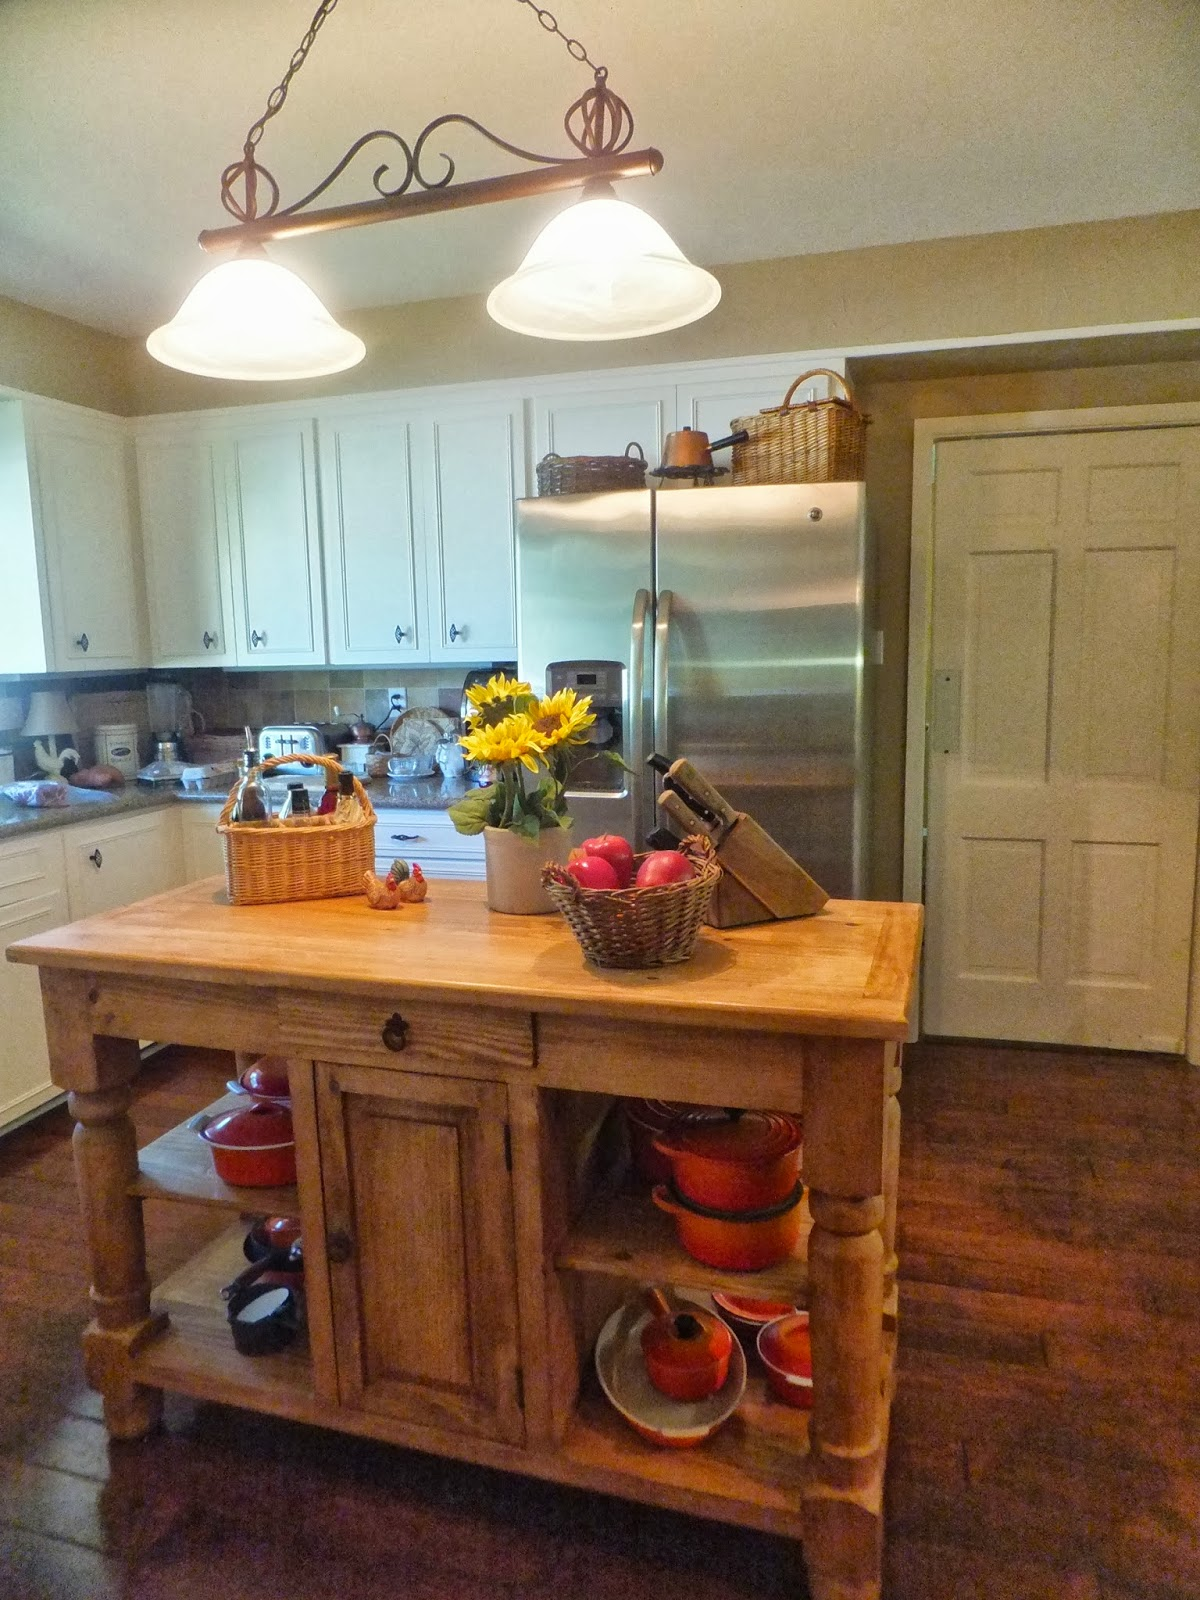 What Is A Kitchen Island With Pictures: Ash Tree Cottage: New Kitchen Island